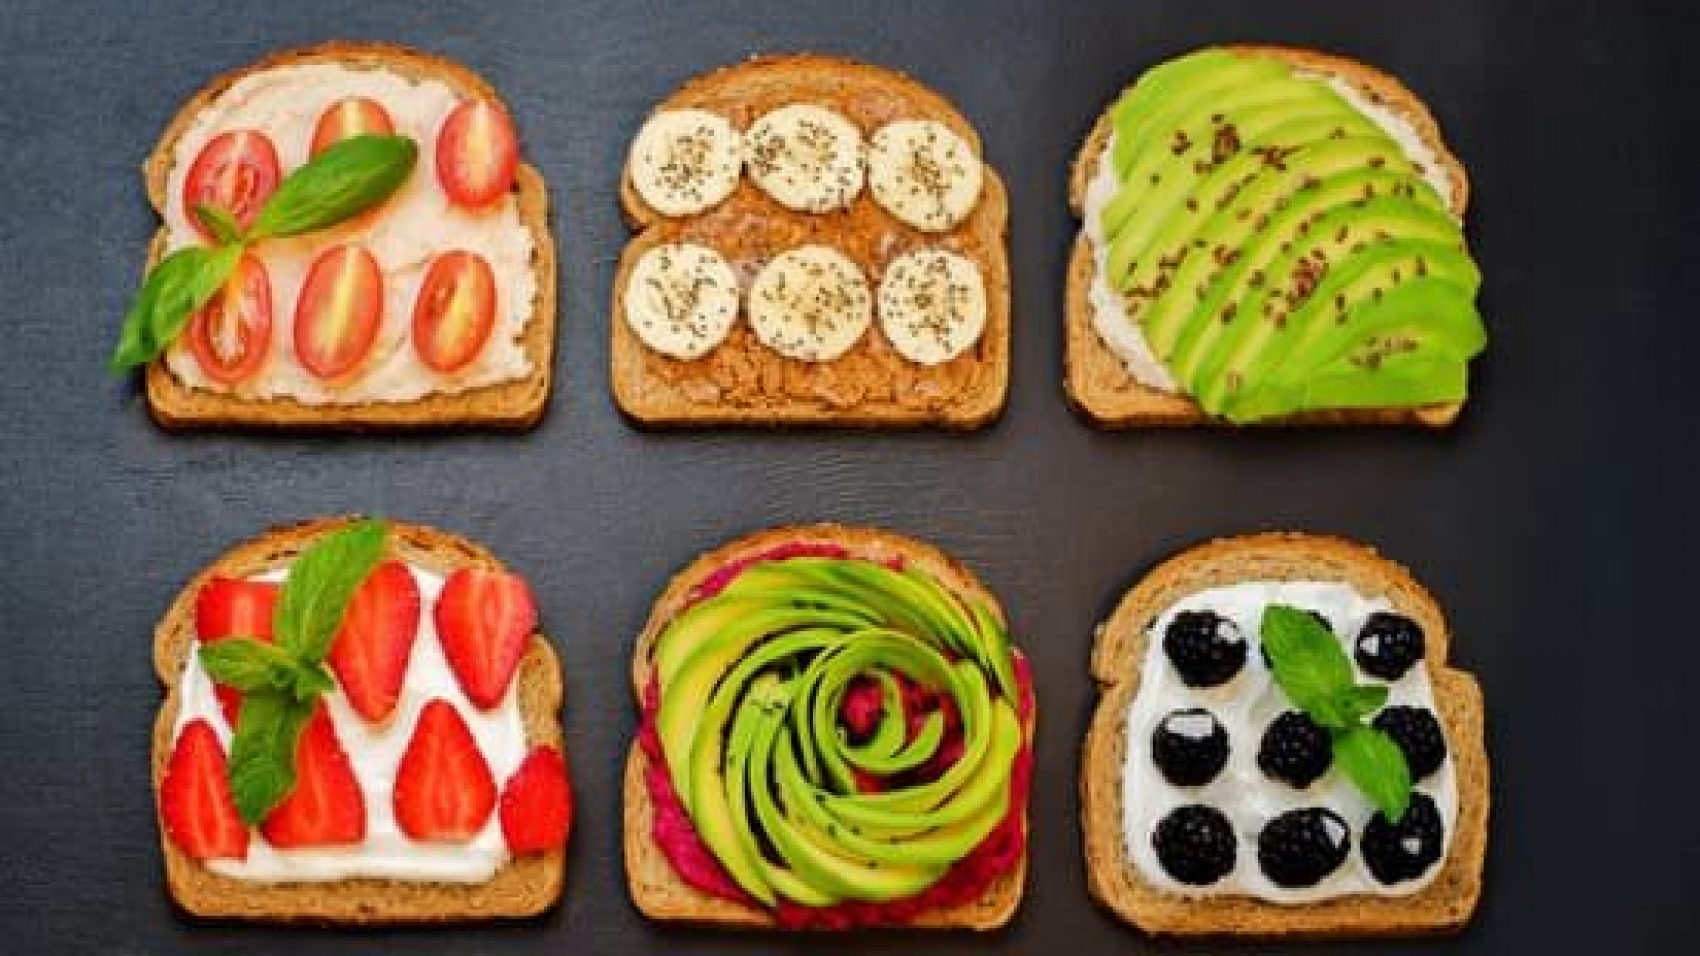 Variation of healthy rye breakfast sandwiches with avocado, hummus, and berries. toning. selective focus